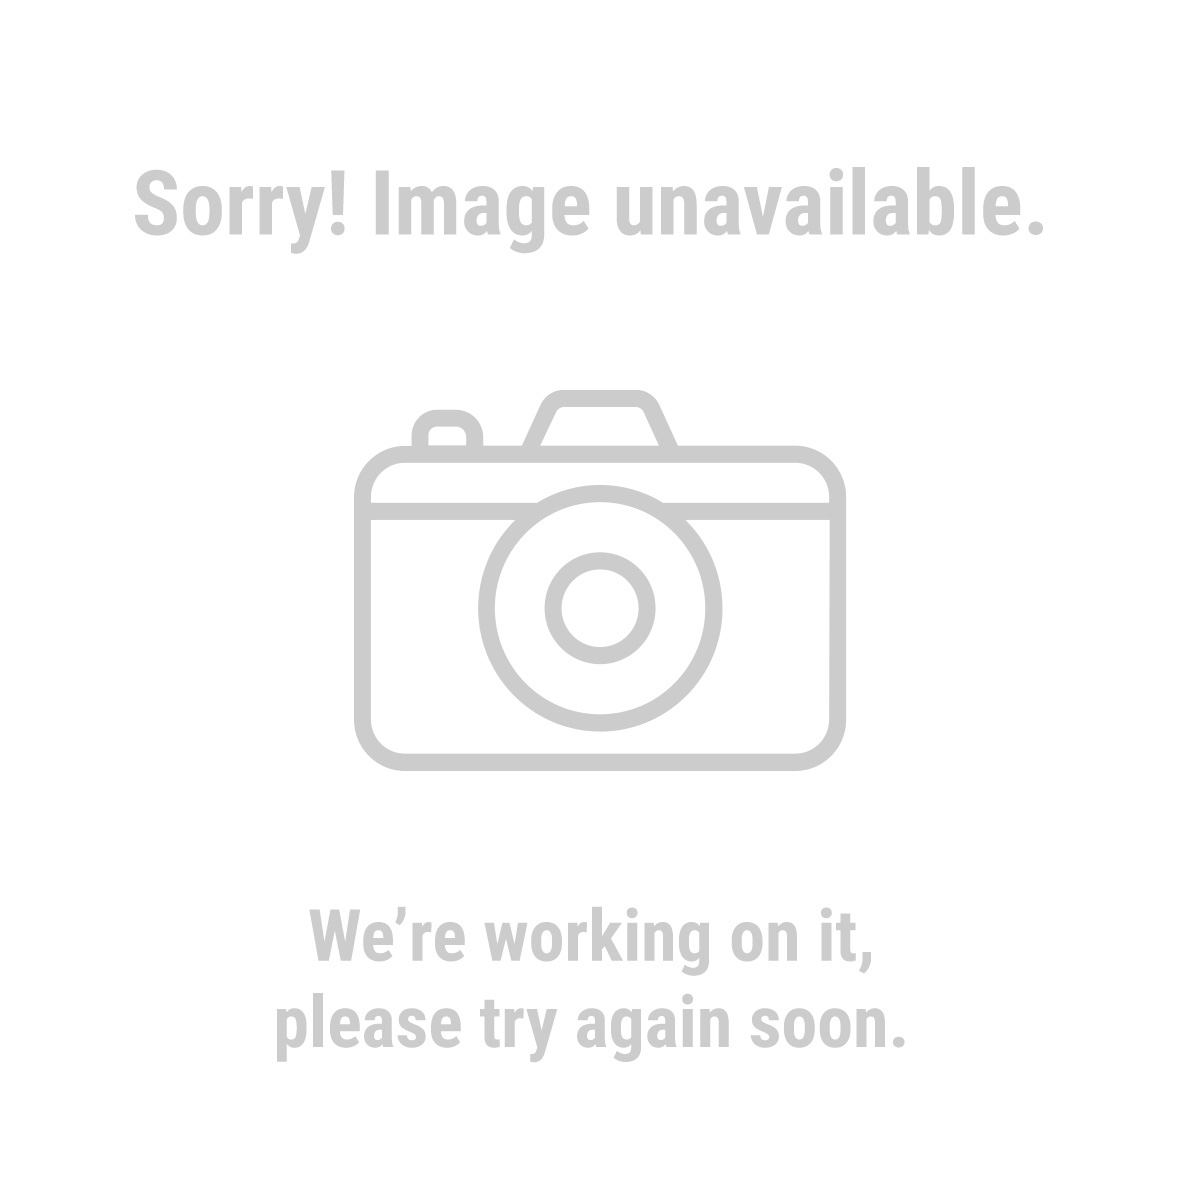 Gordon® 32099 13 Piece Precision Knife Set